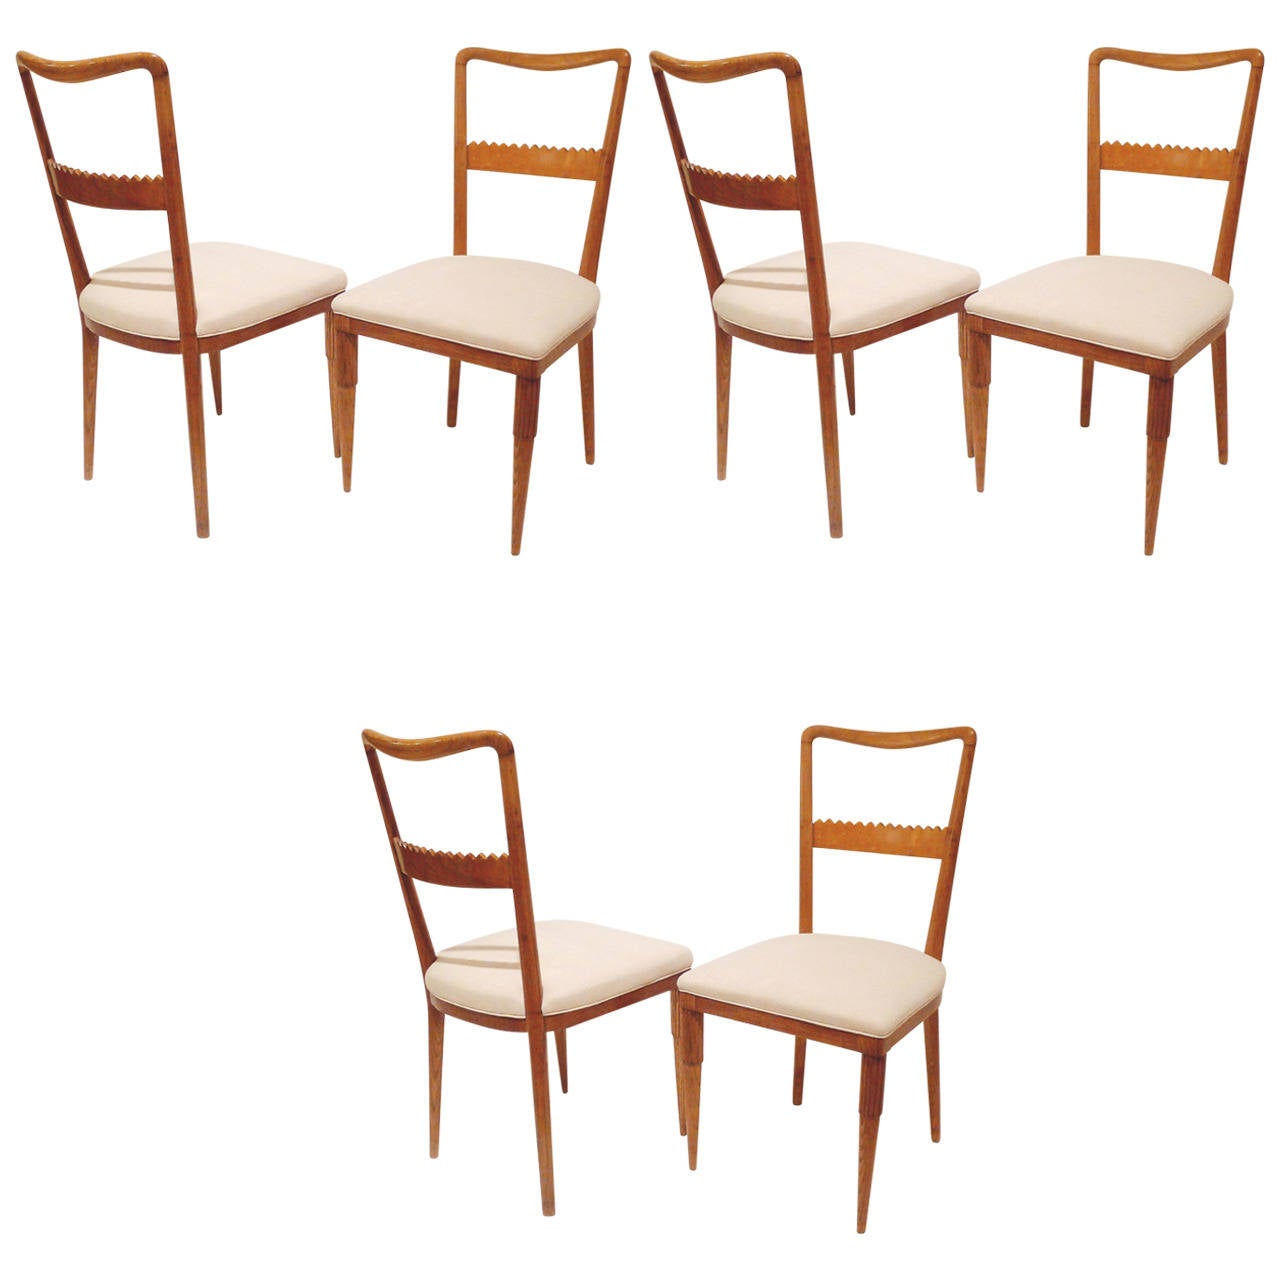 this set of six dining chairs by pier luigi colli is no longer